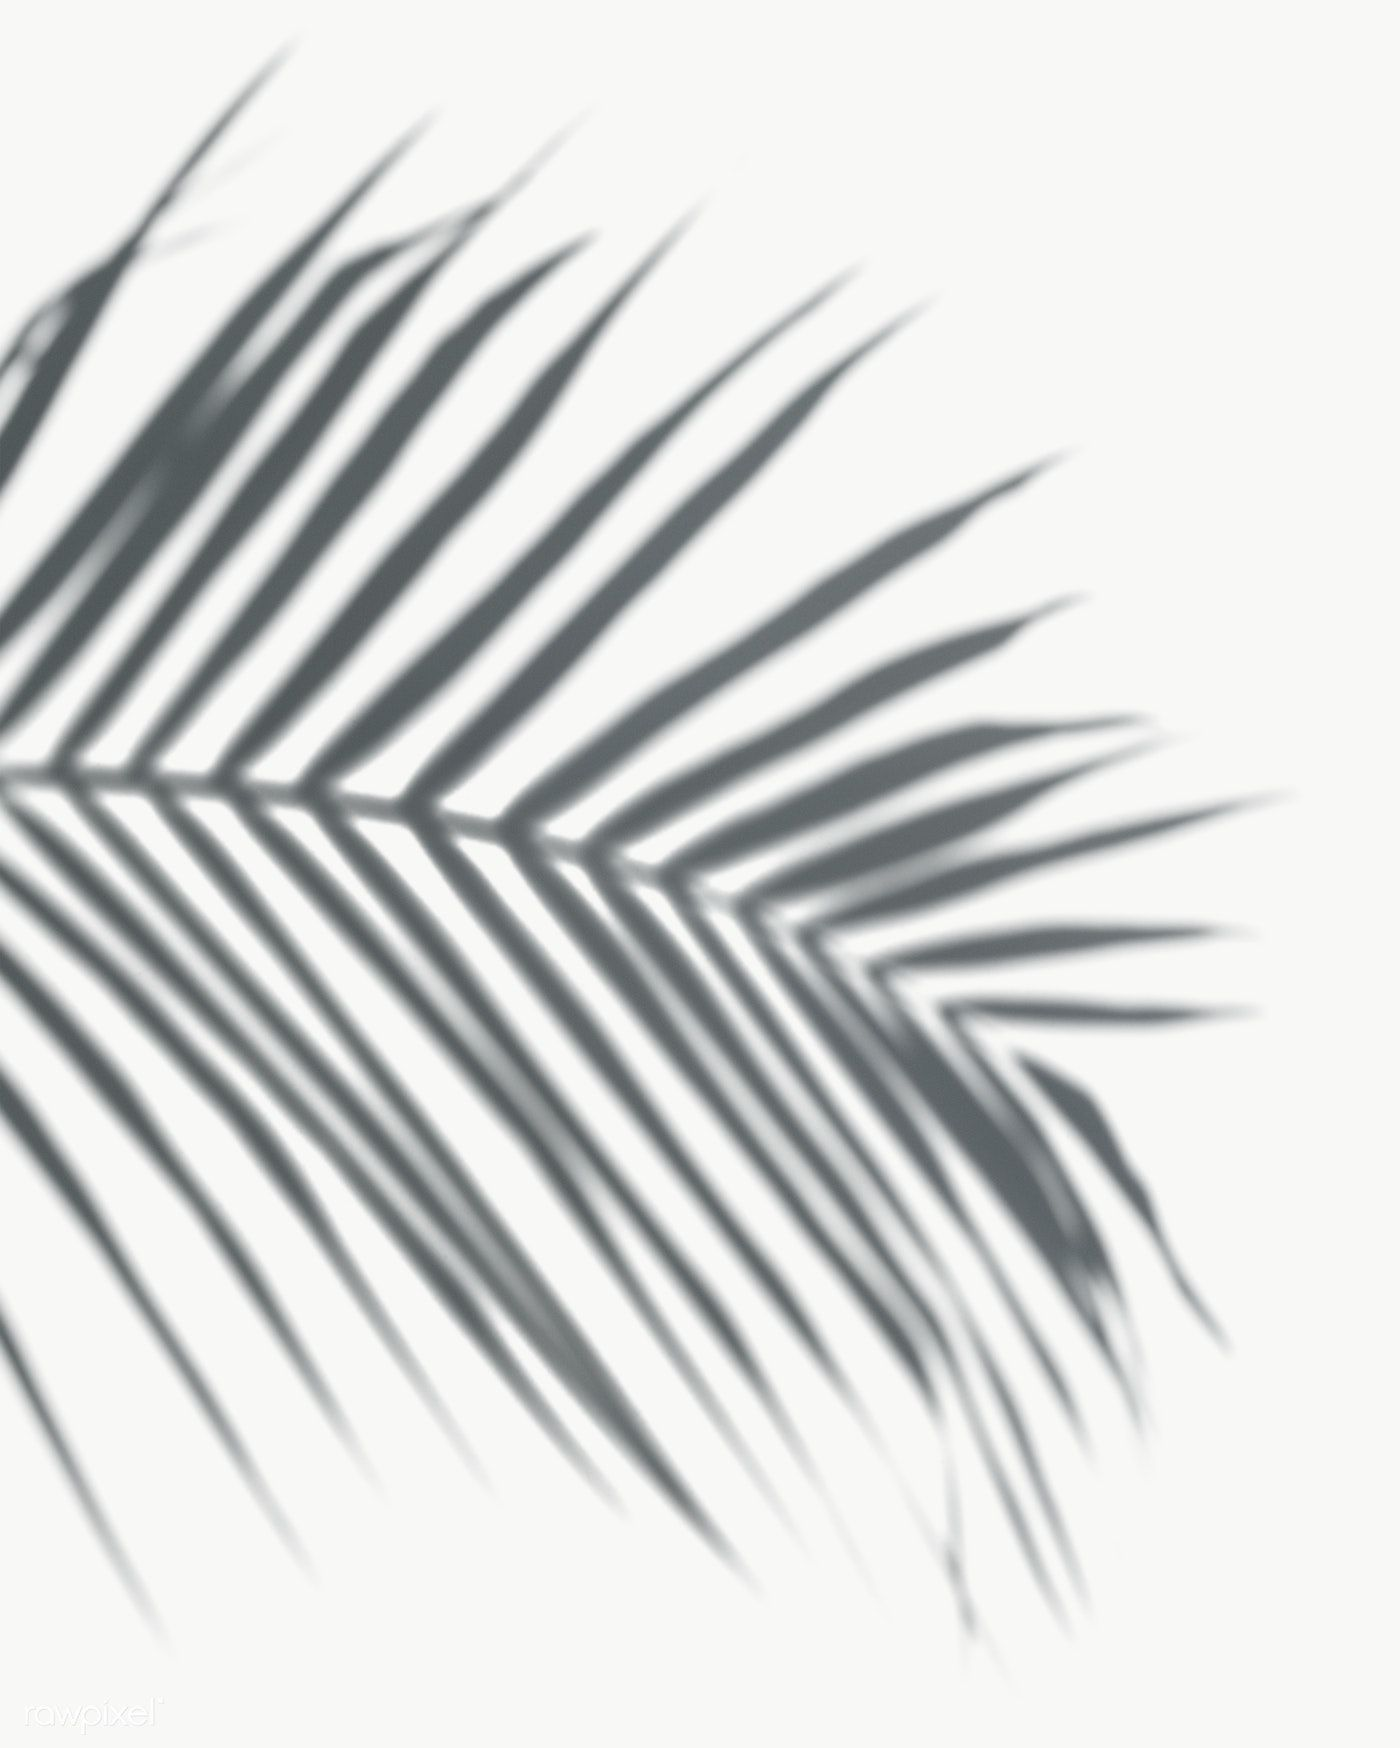 Shadow of palm leaves on a white wall | free image by